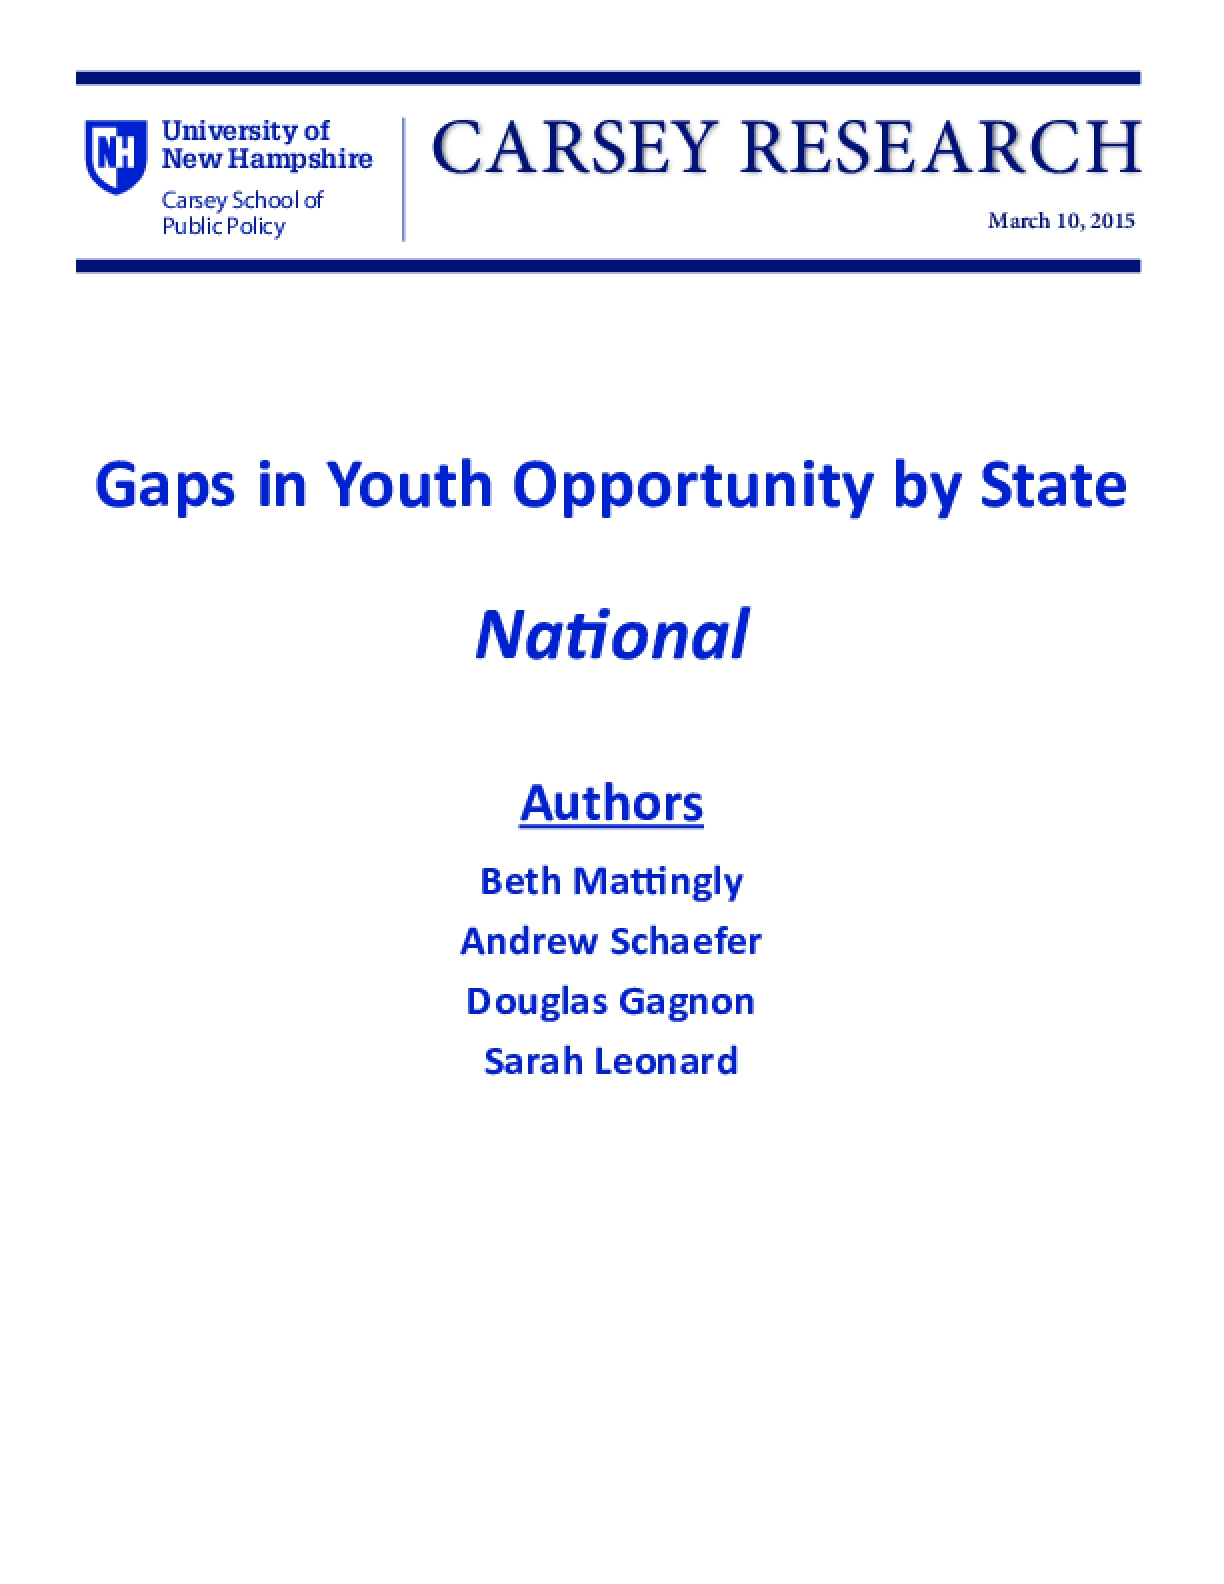 Gaps in Youth Opportunity by State